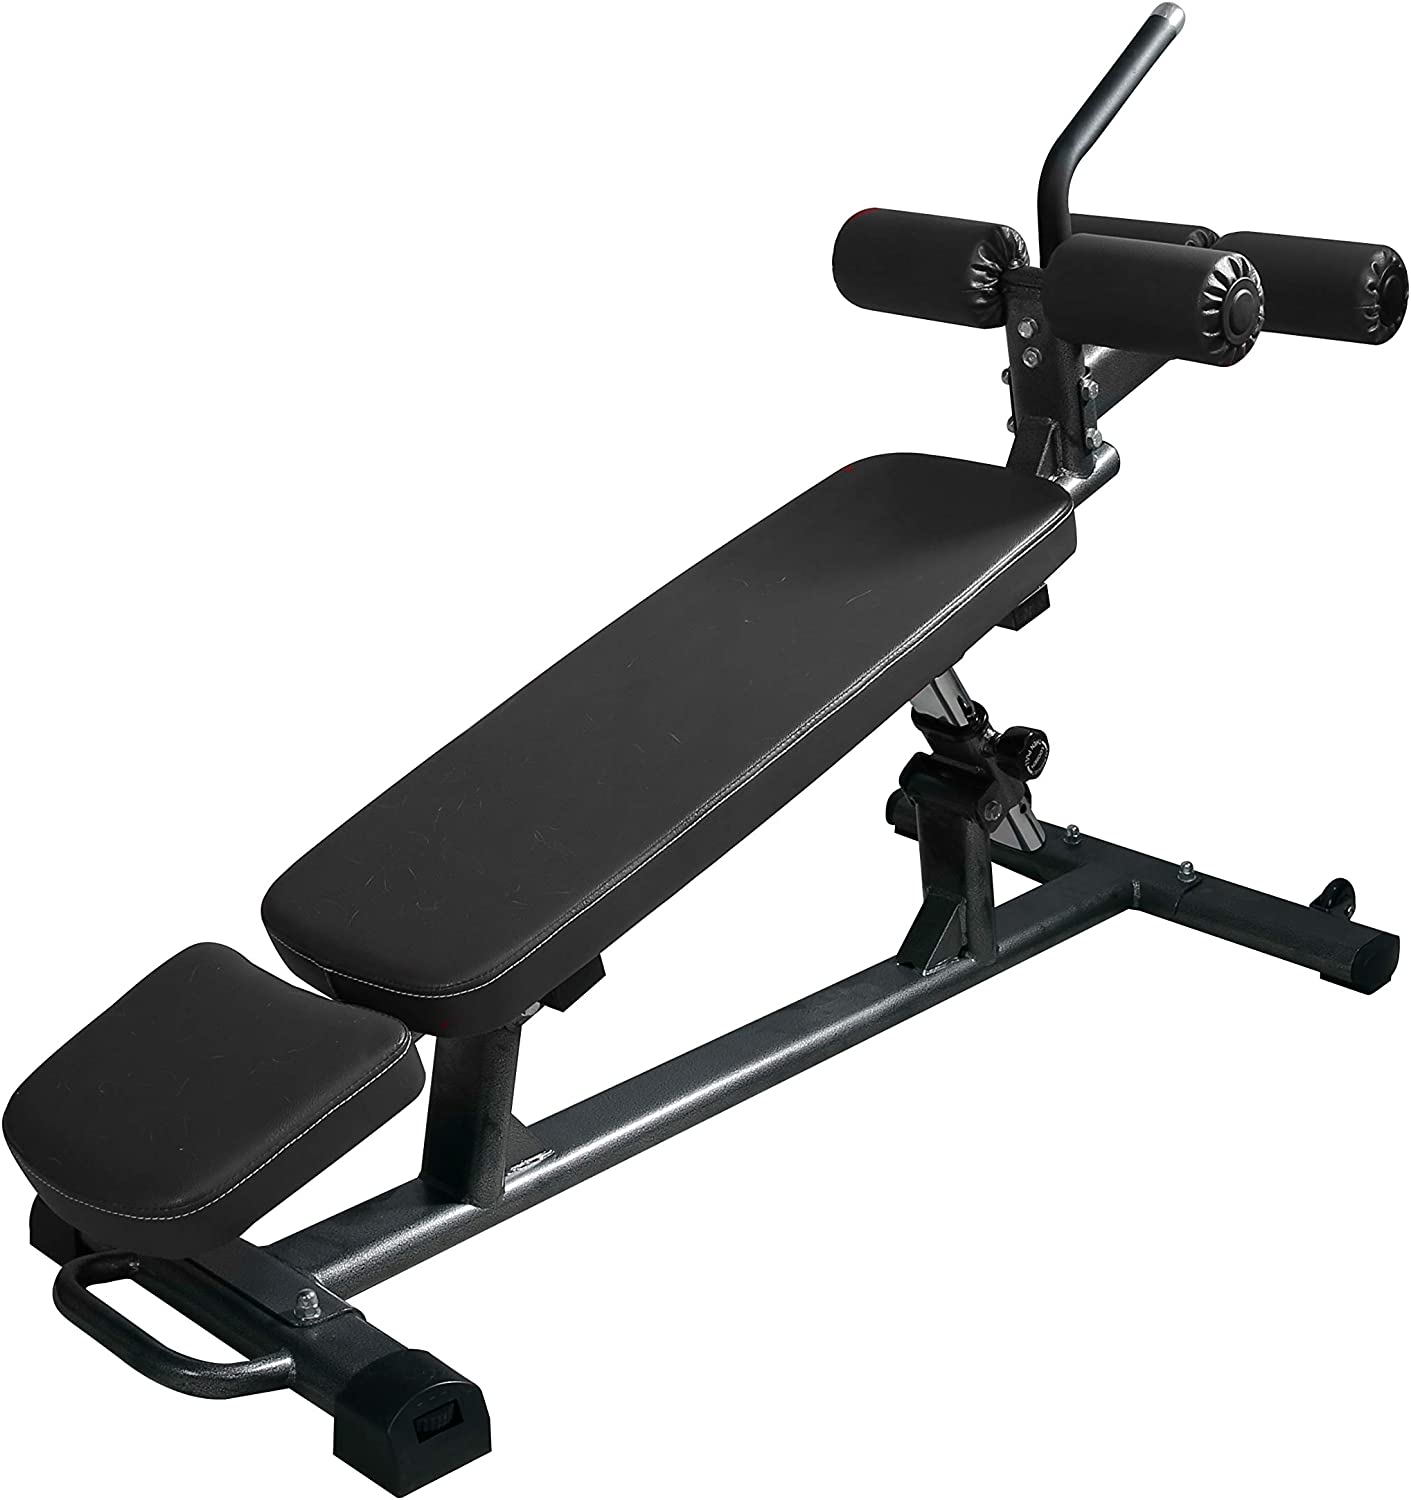 Amazon Com Finer Form Semi Commercial Sit Up Bench For Decline Bench Press And Core Workouts With Reverse Crunch Handle For Ab Exercises And 4 Adjustable Height Settings Black Sports Outdoors